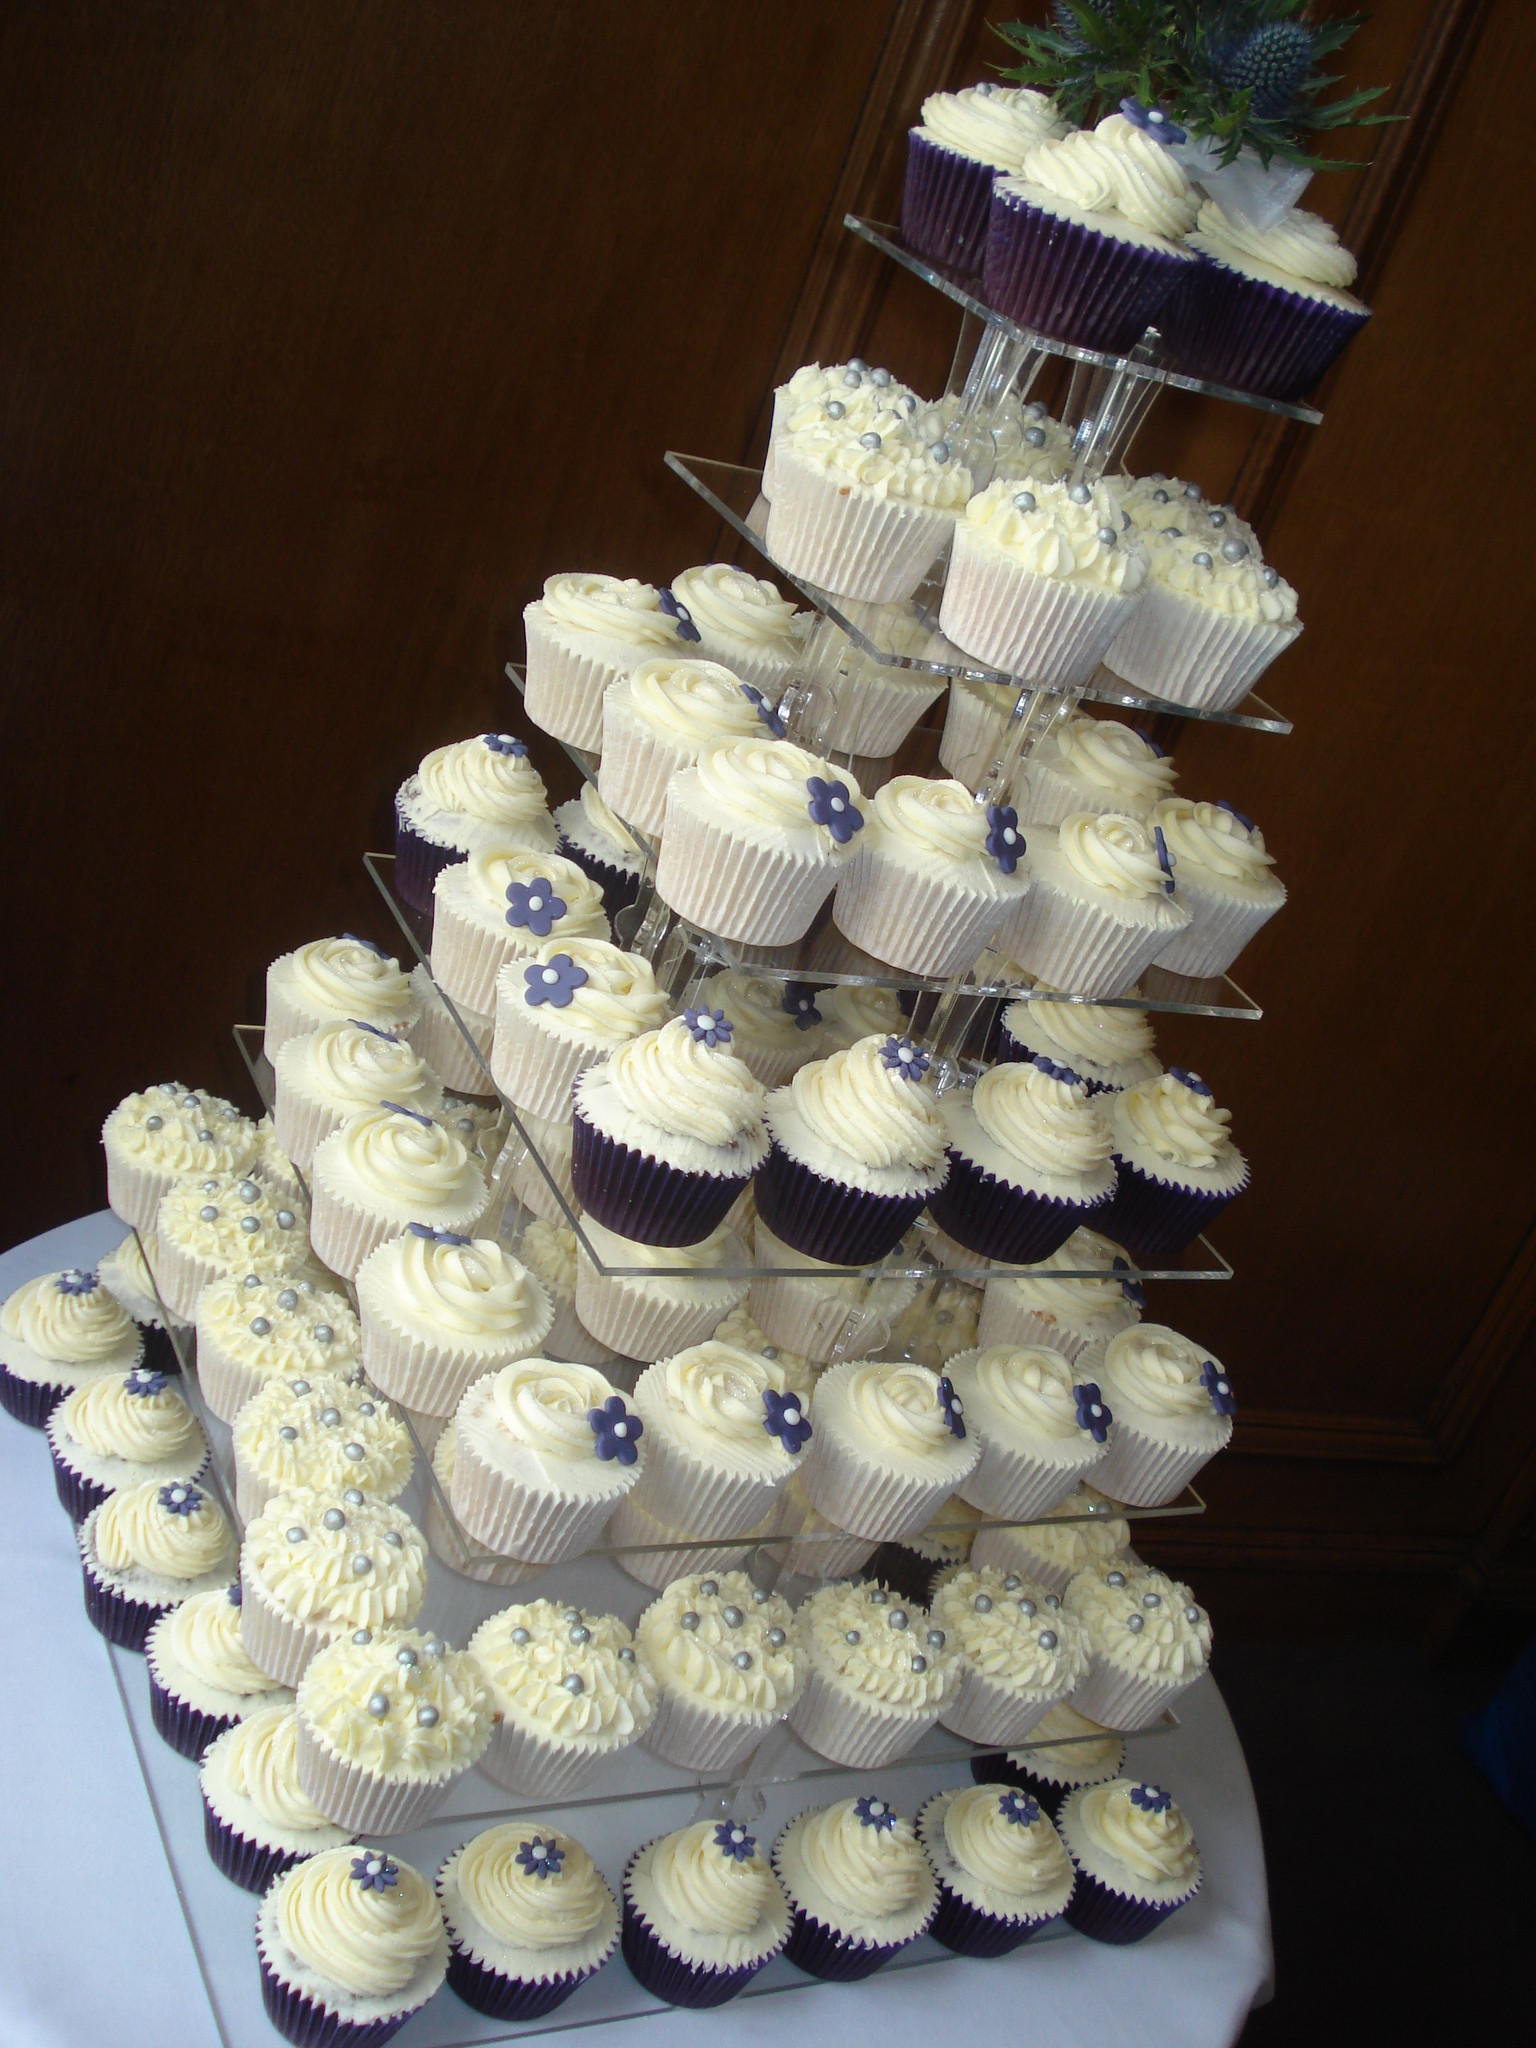 Wedding Cup Cakes  Scottish Wedding cupcakes – CAKES BY LIZZIE EDINBURGH